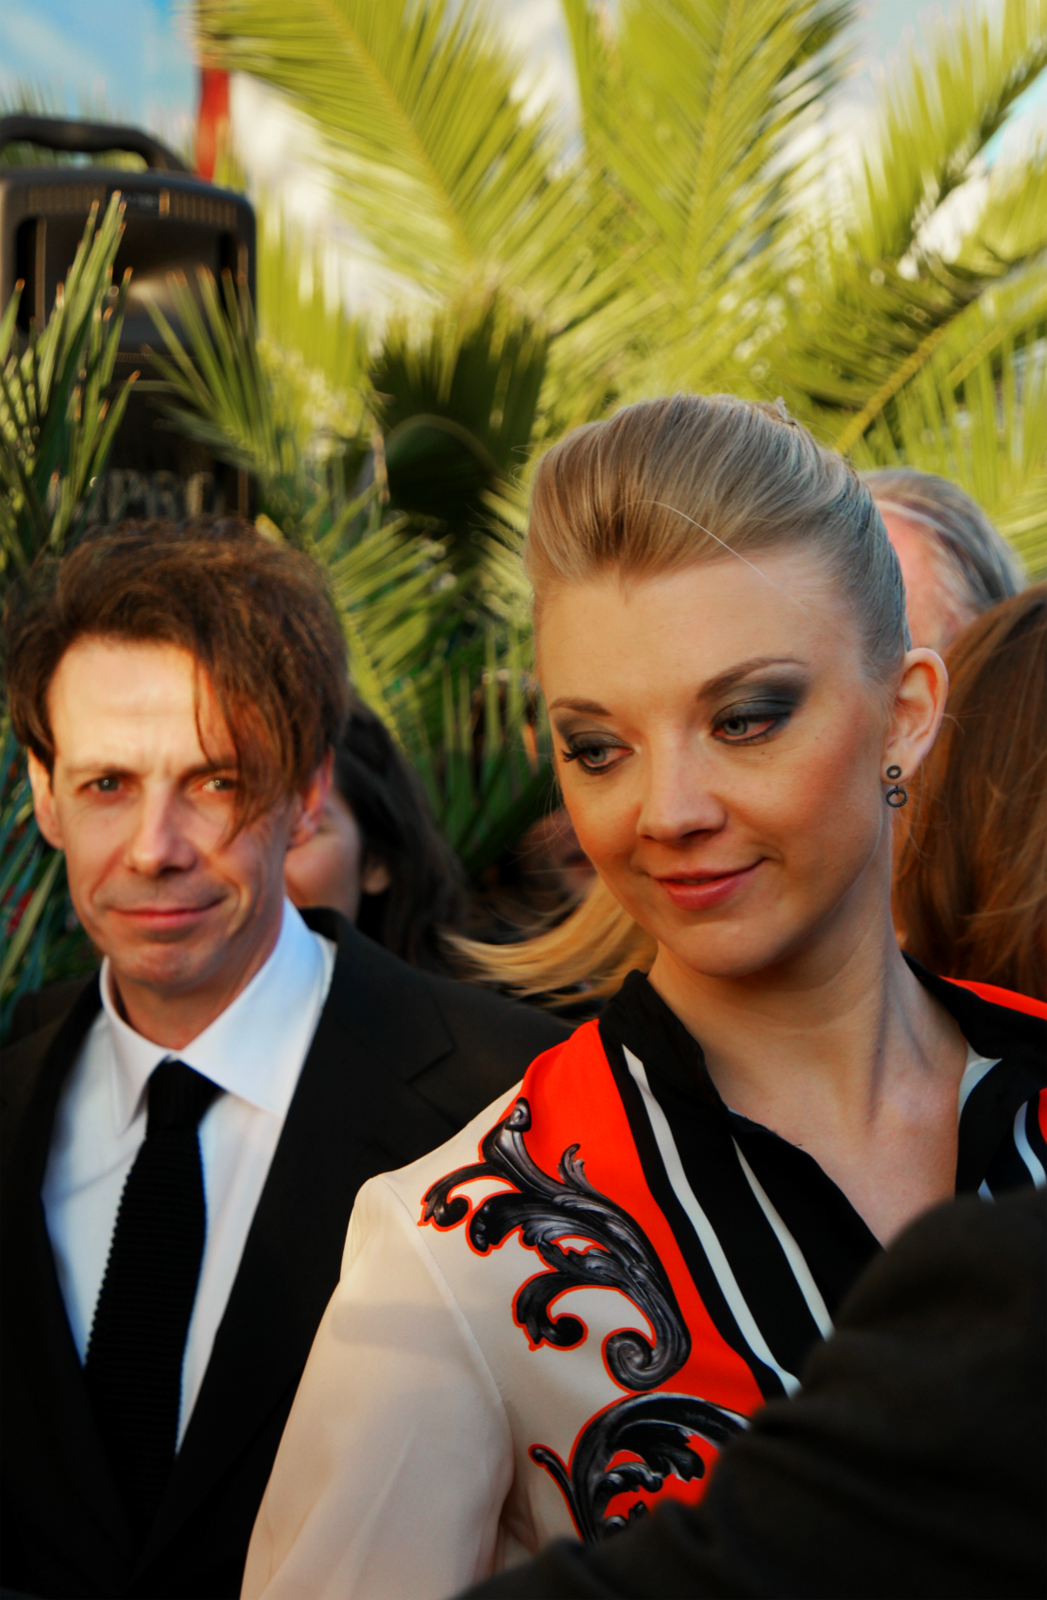 Natalie Dormer Game of Thrones The Tudors actress actrice Noah Taylor actor opening Festival Britannique du film de dinard 2015 red carpet photo by usofparis